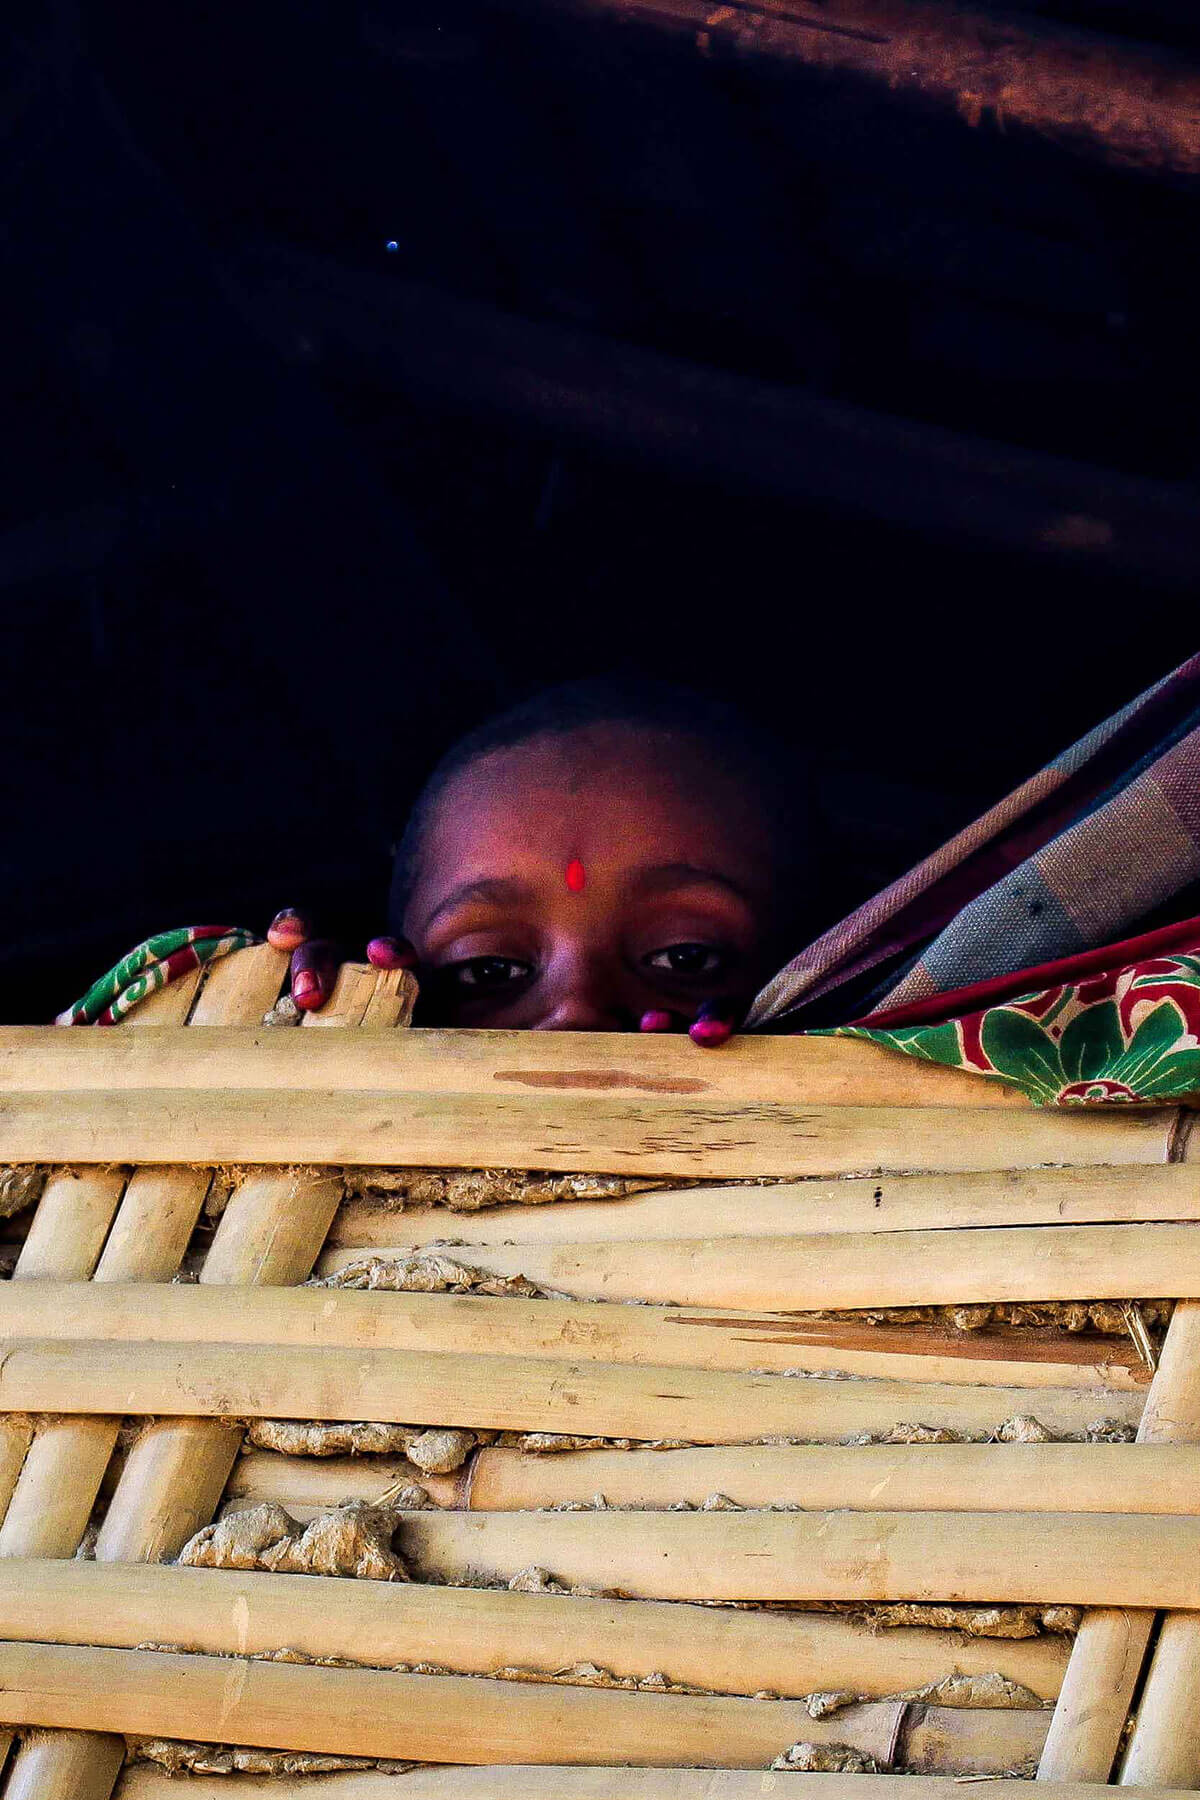 Babita Marik's son peeps through the bamboo wall. Bamboos are essential part of Mariks' lives.